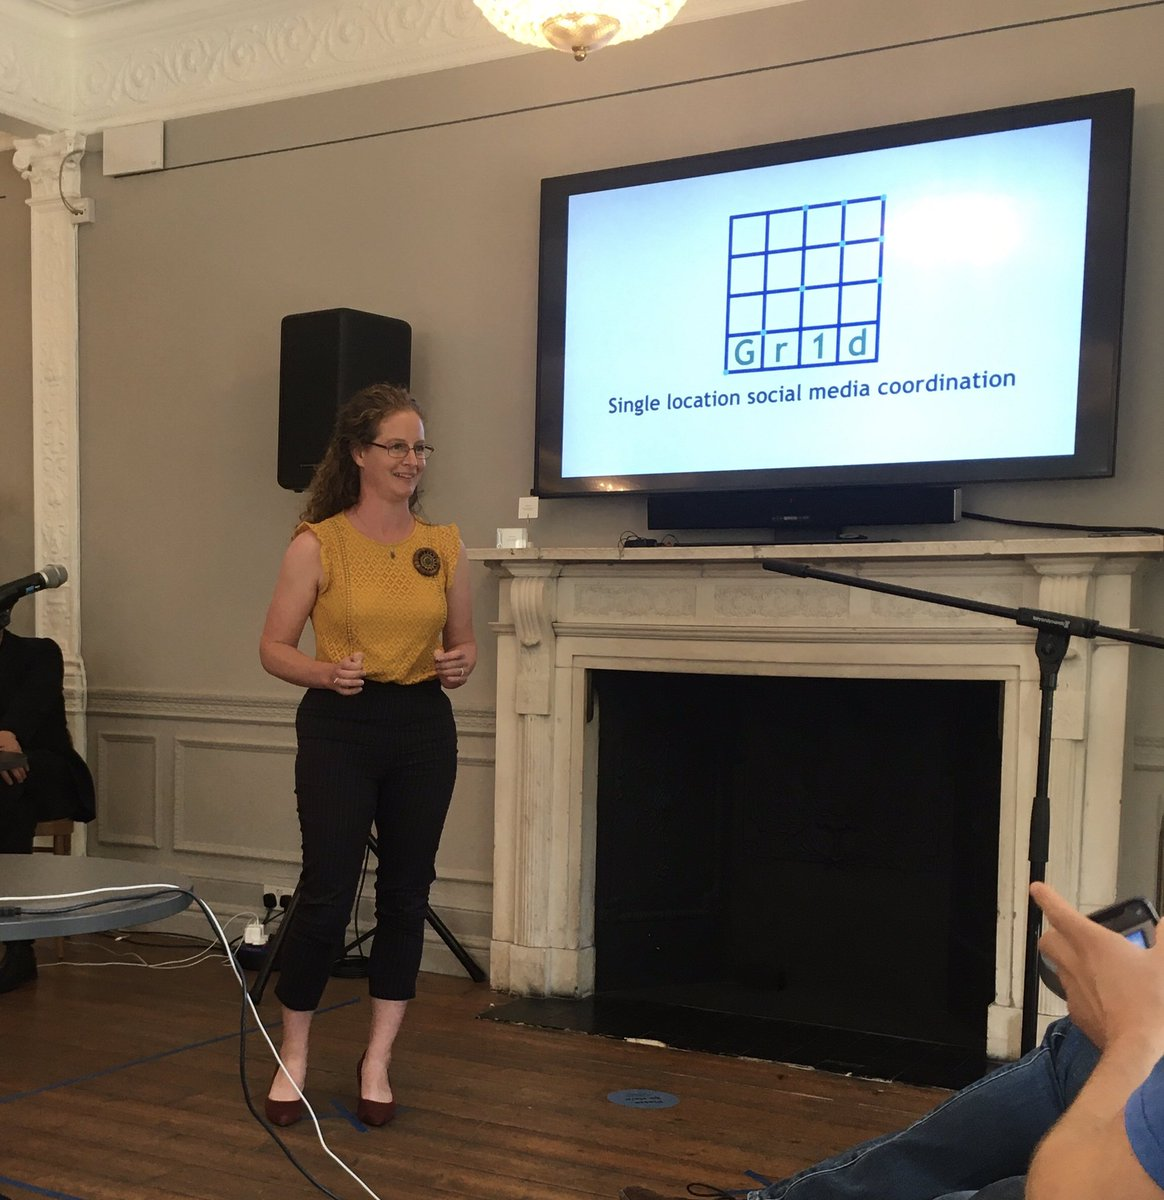 Our CO is at @PUBLICHallUK today attending her graduation from the #PercyHobartFellowship innovation programme. Some great pitches, lots of innovative ideas out there. #RNInnovation